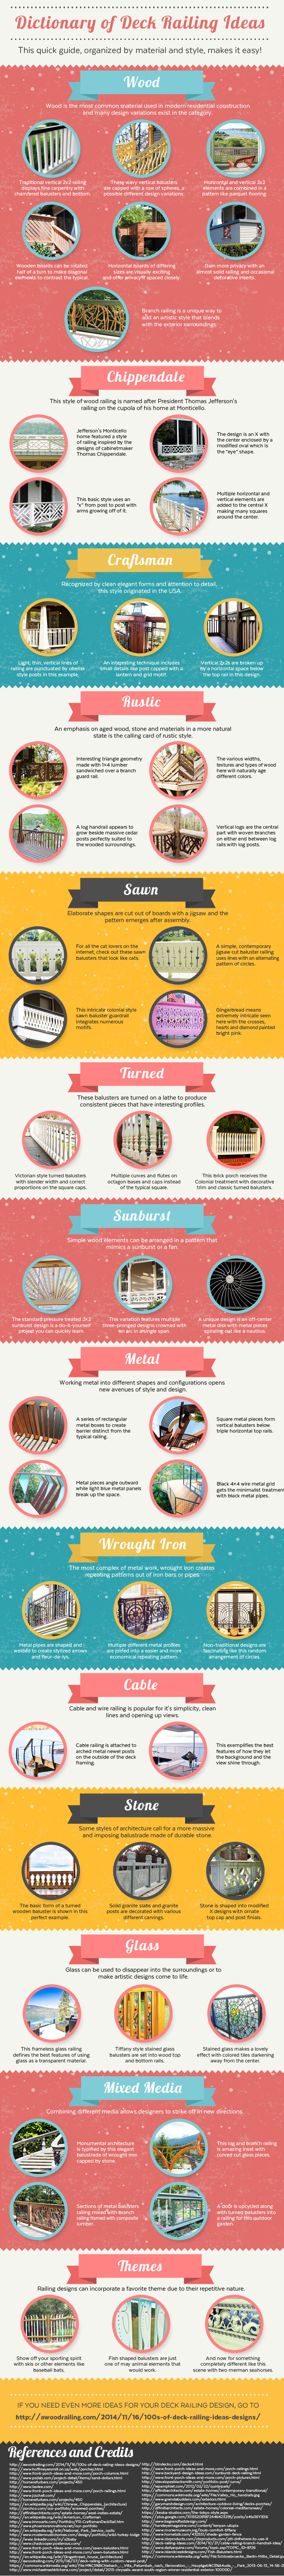 Guide to Deck Railing Designs